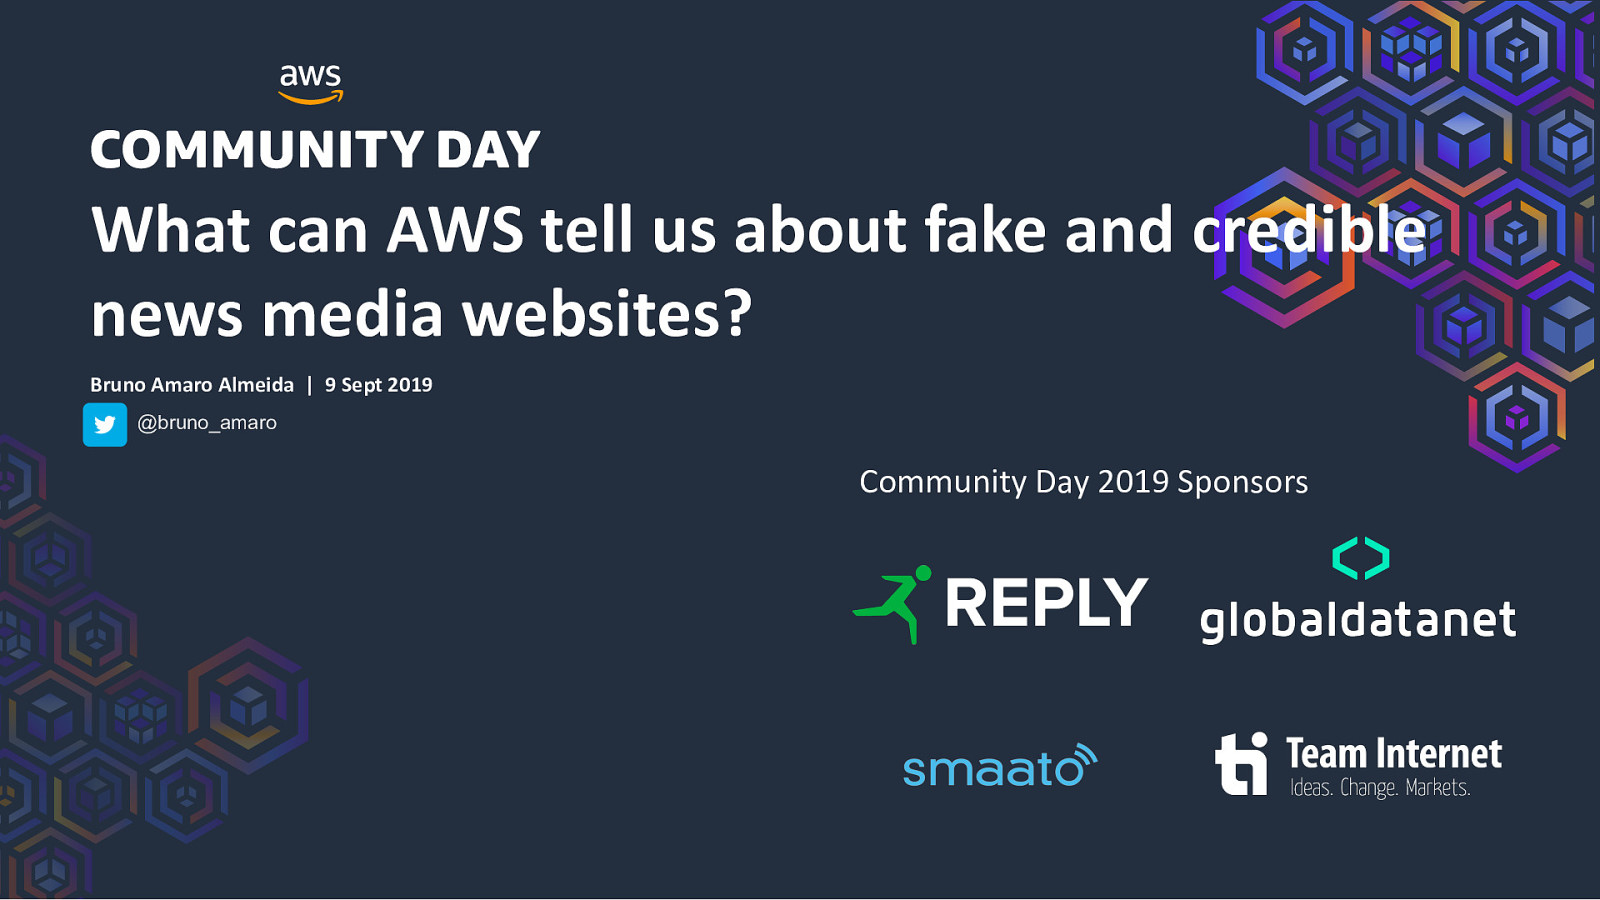 What can AWS tell us about fake and credible news media websites?